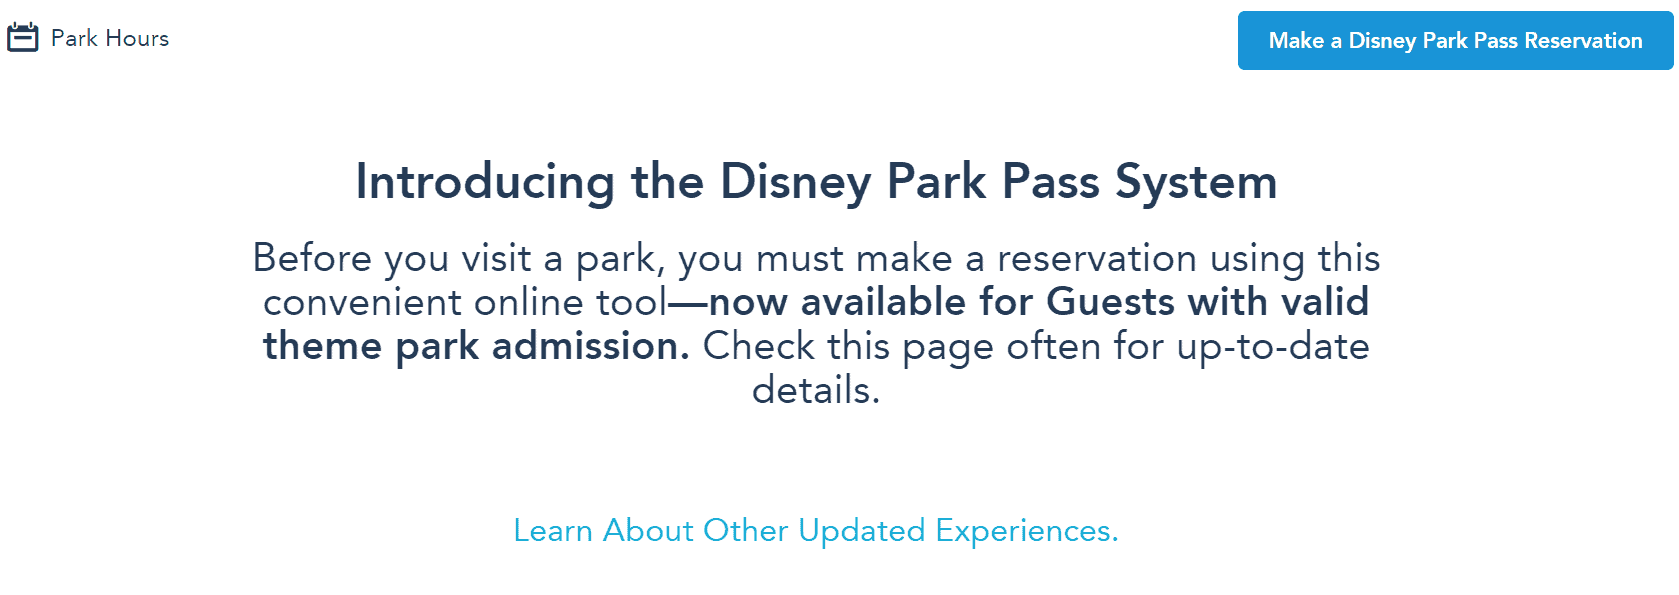 Disney park pass system - create your party